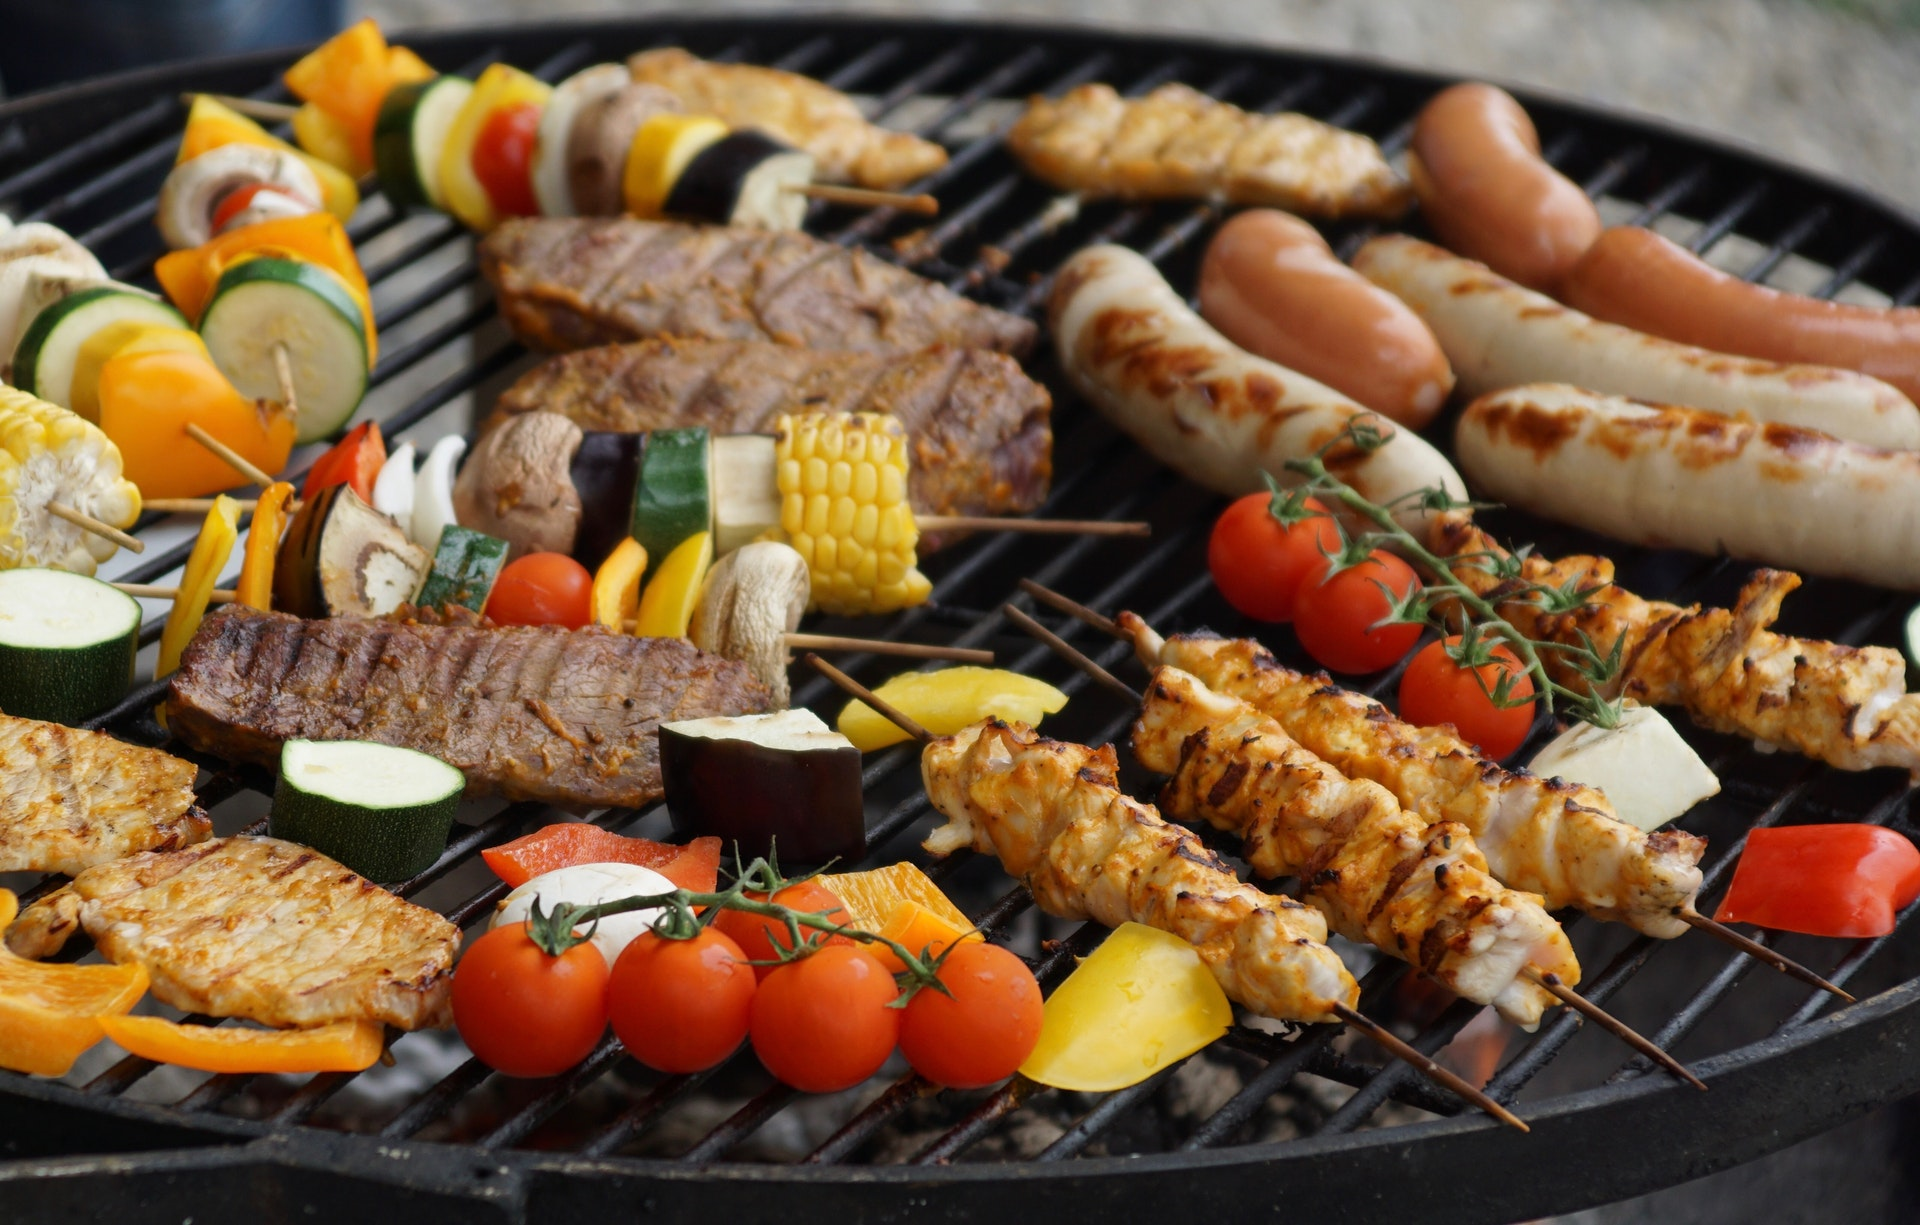 Grilling Season Fires up Plant-Based Food Sales, Dairy Alternatives Accelerate Adoption